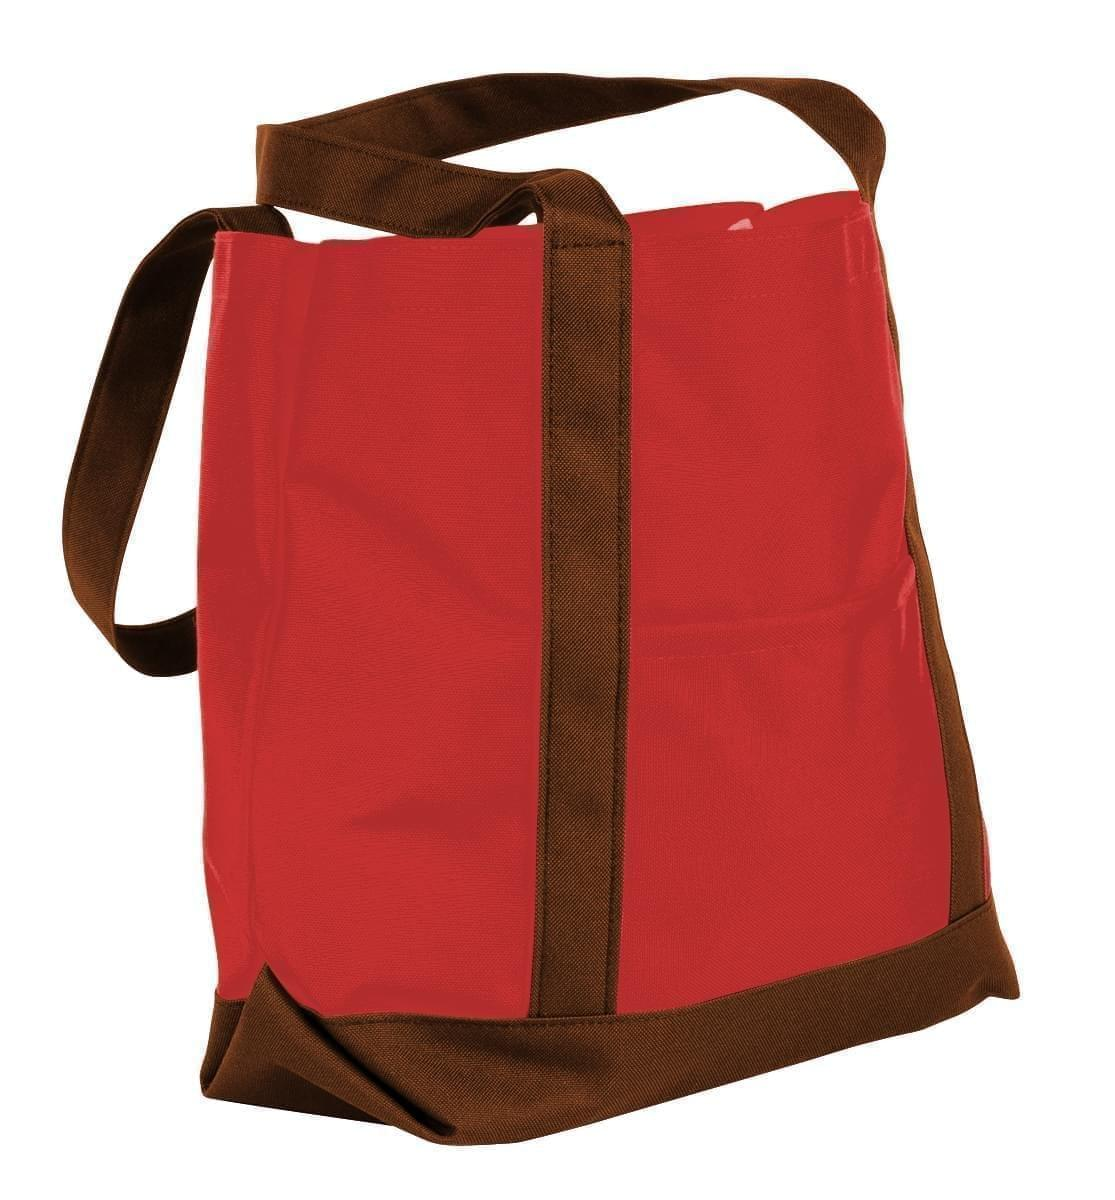 USA Made Nylon Poly Boat Tote Bags, Red-Brown, XAACL1UAZD